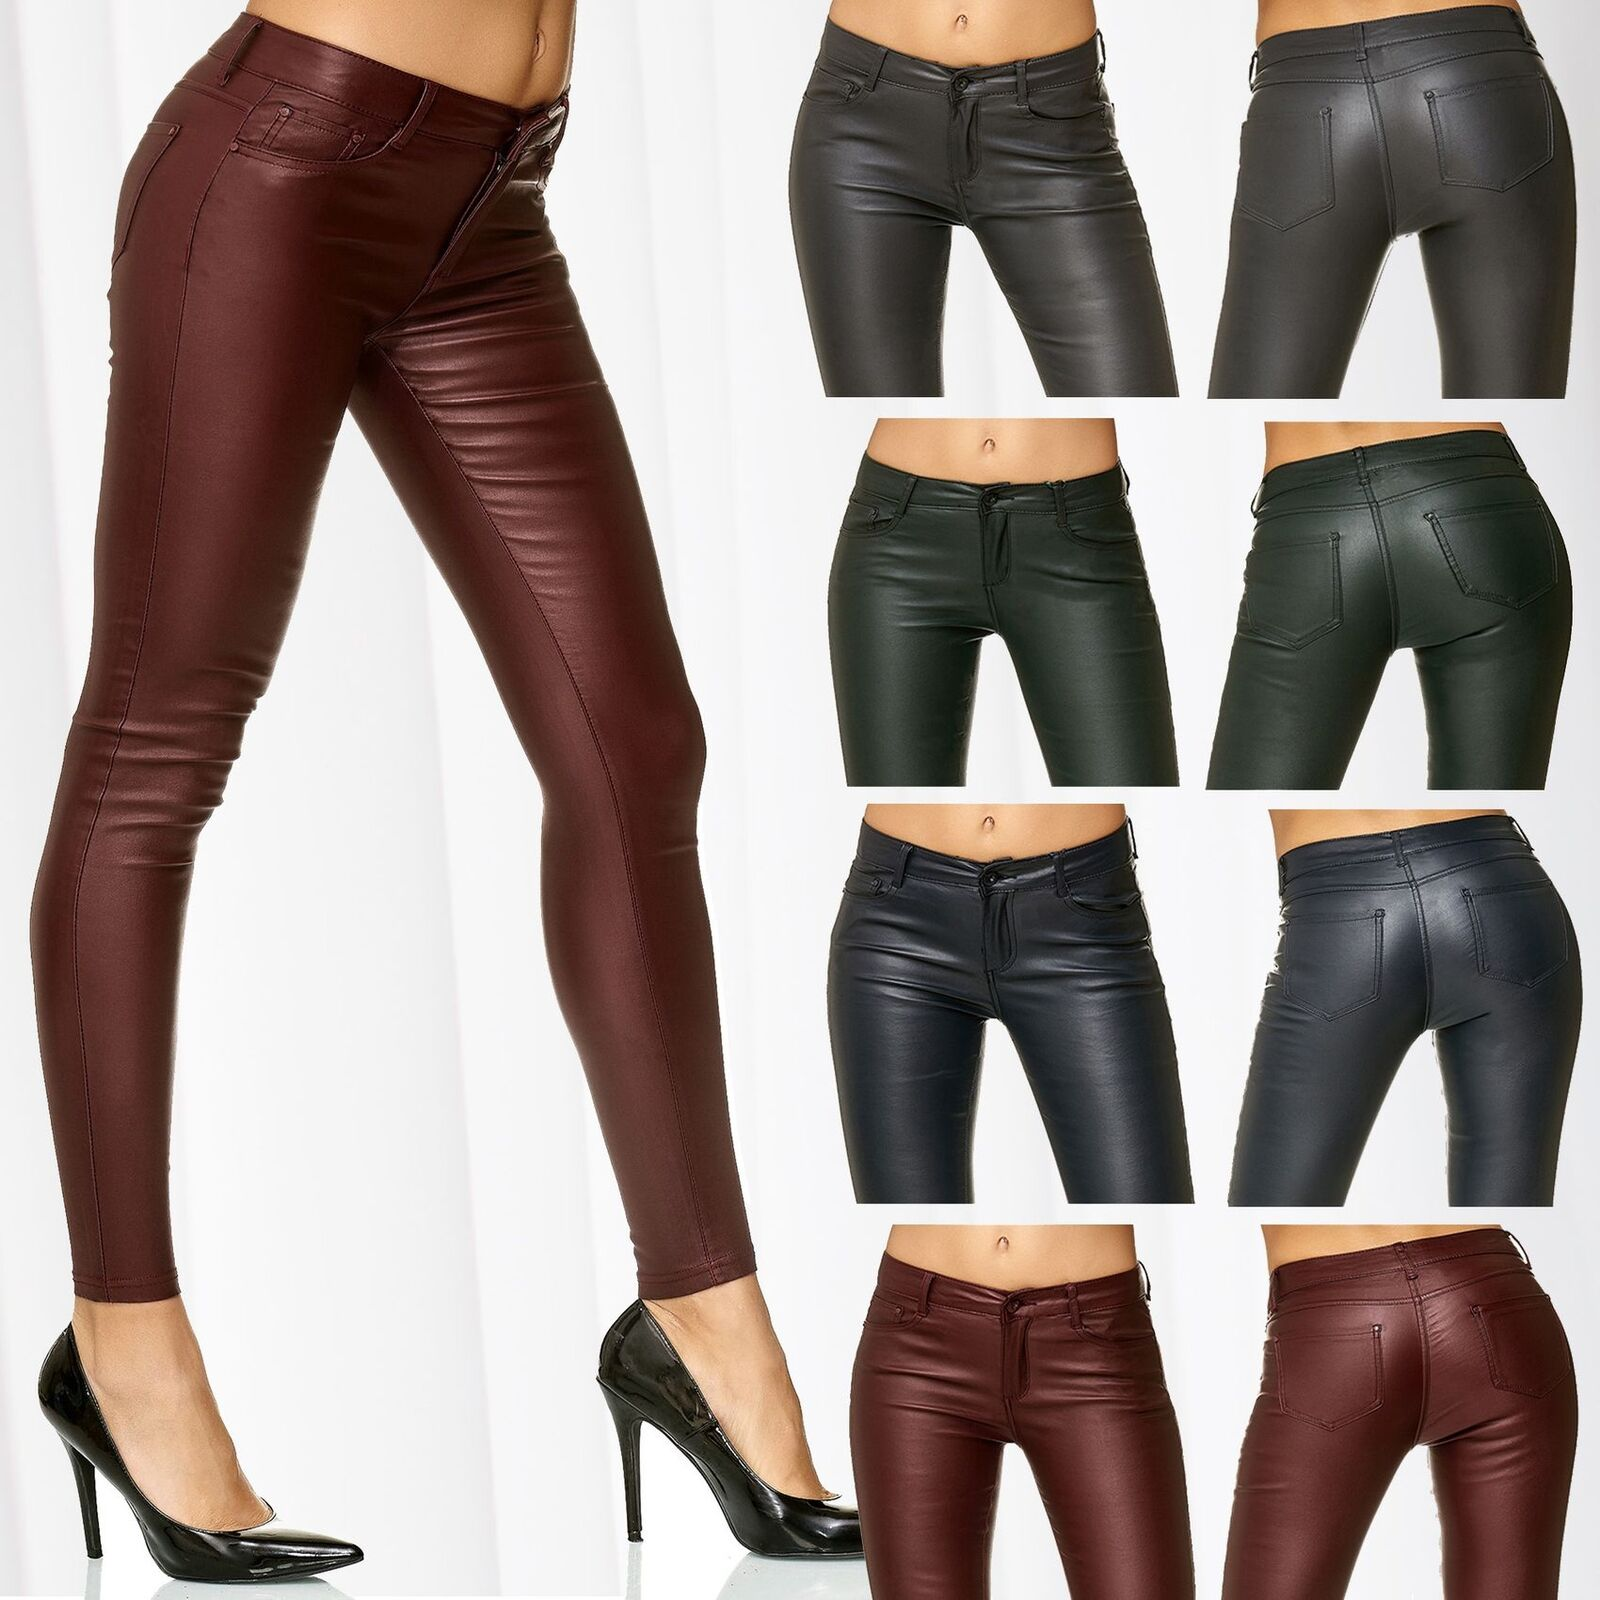 ZOGAA Women PU Leather Pant Skinny Sexy Trousers 2019 Autumn Hot Solid Pencil Pants Ladies Pants Biker Art Leather Trousers